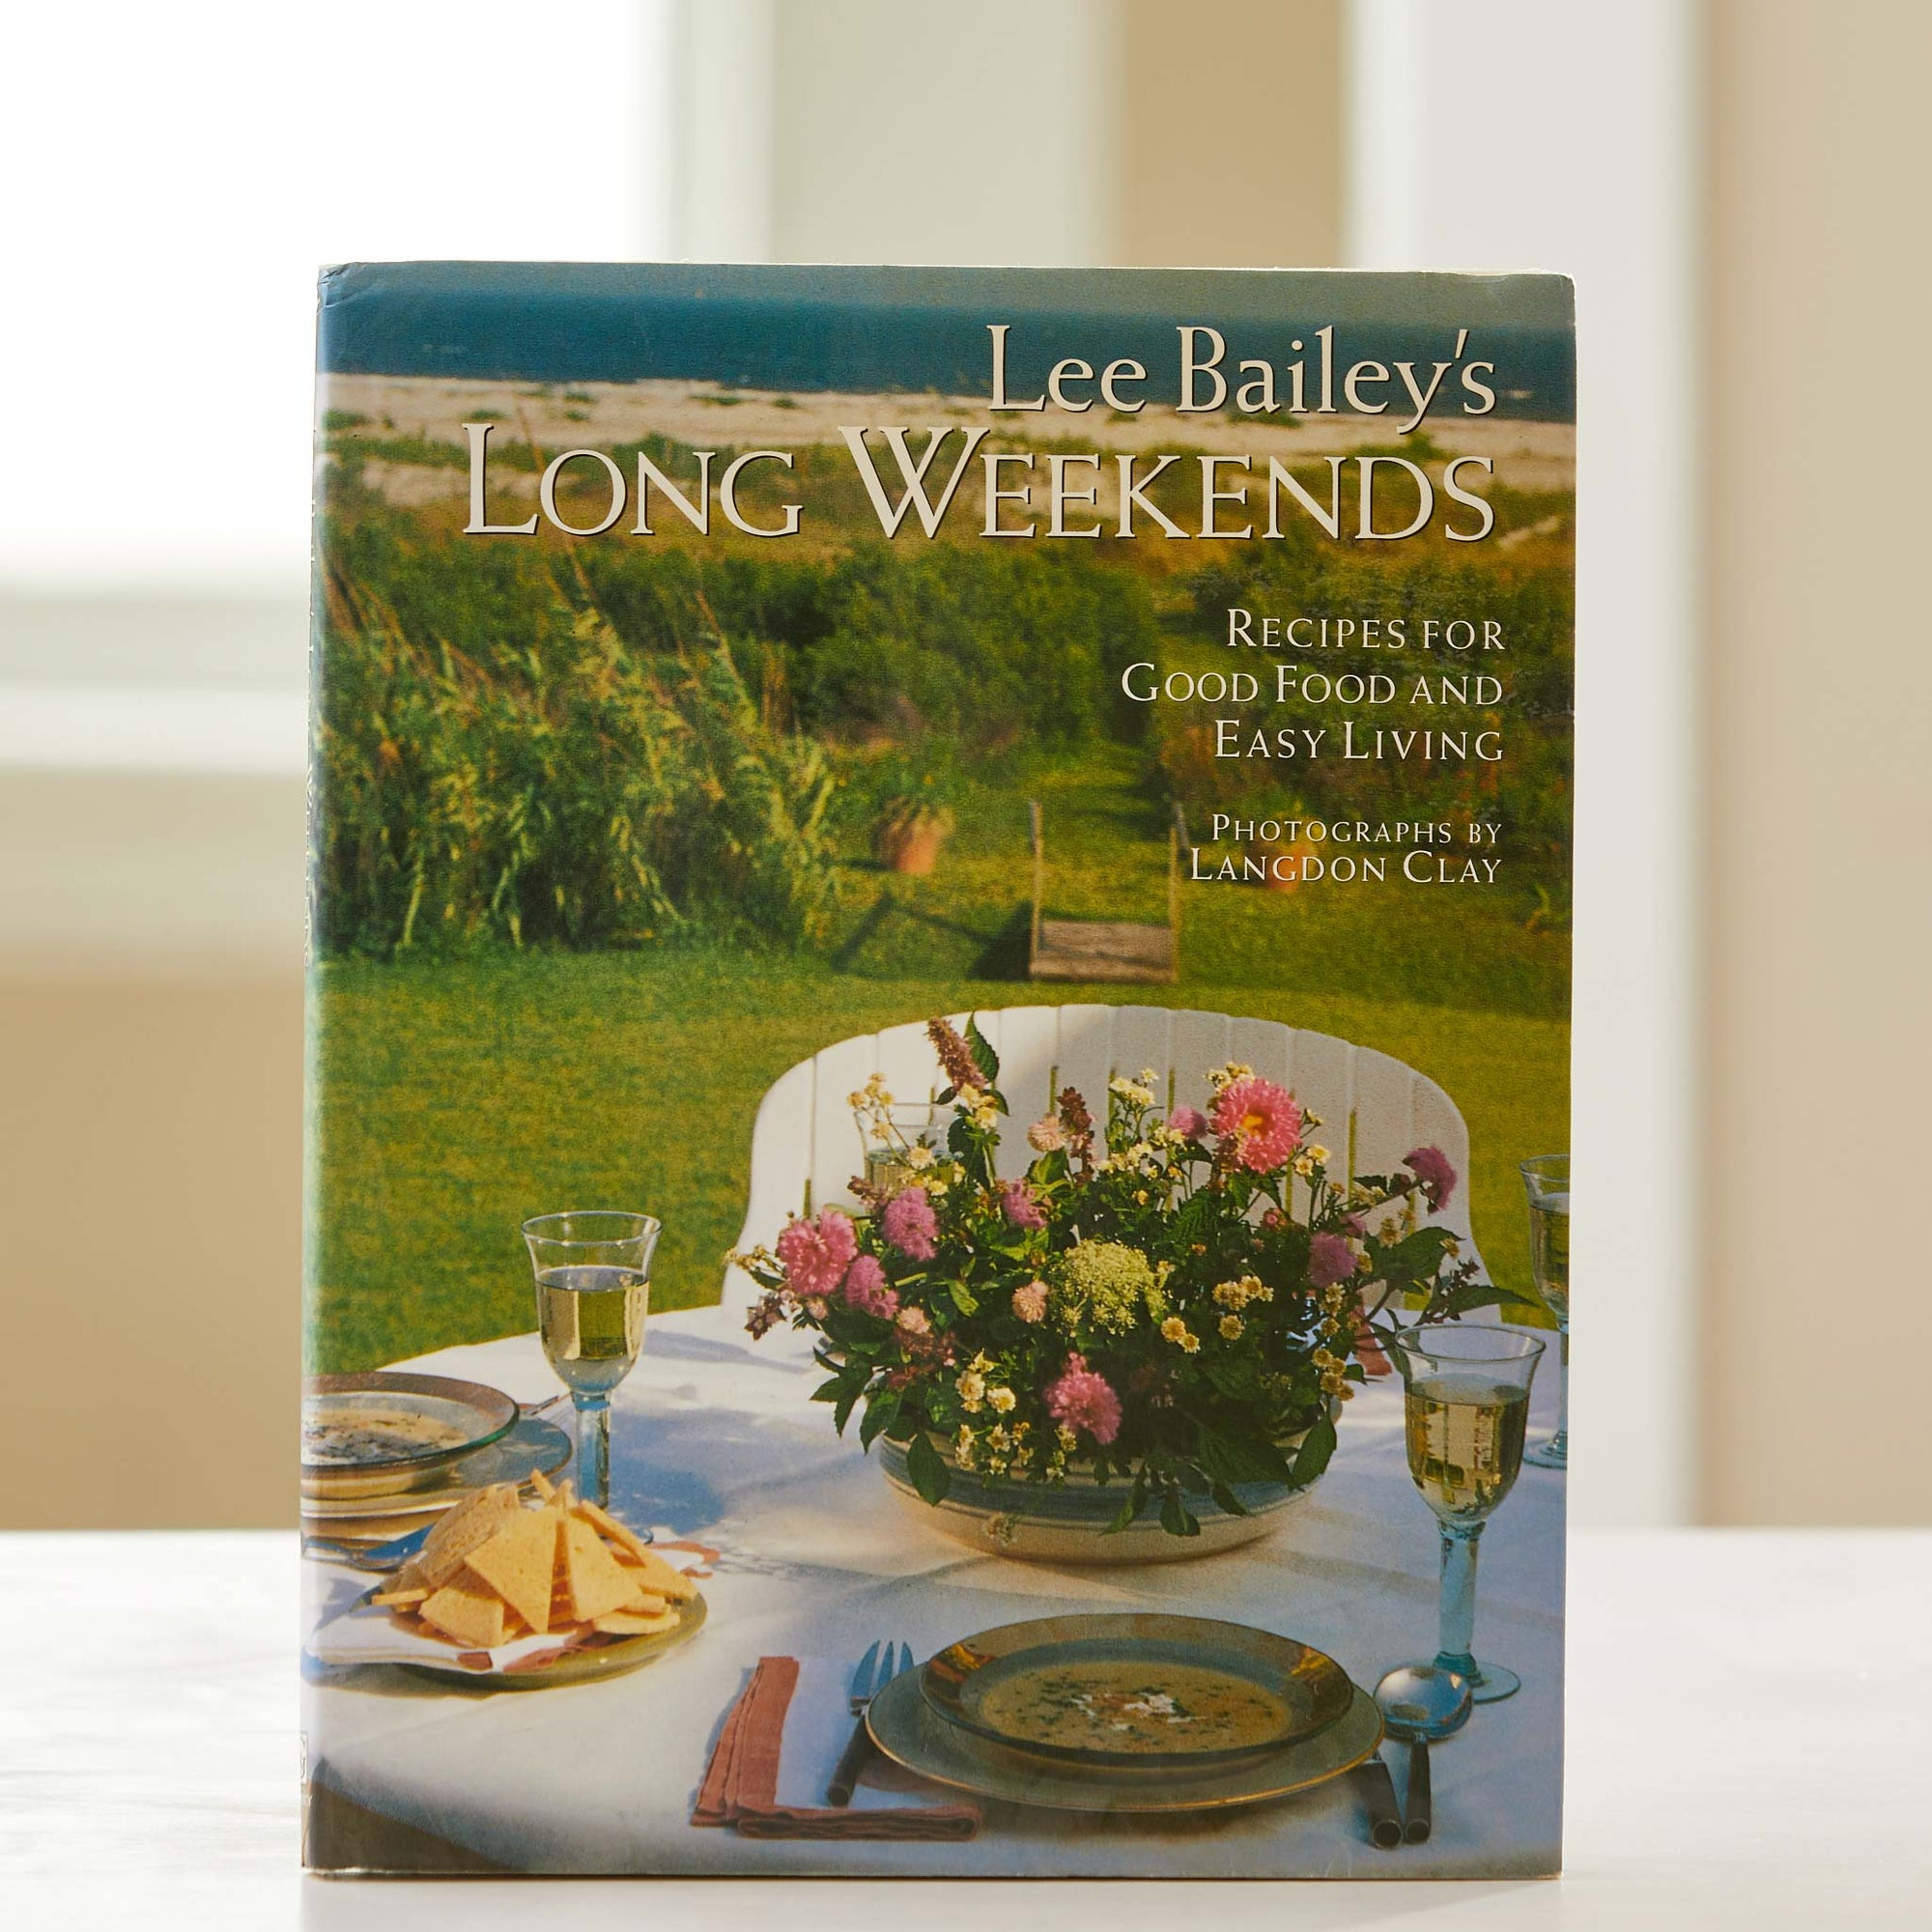 Lee Bailey's Long Weekends. This great american cookbook guides your entertaining across 8 regional cuisines. The best weekend cook book.